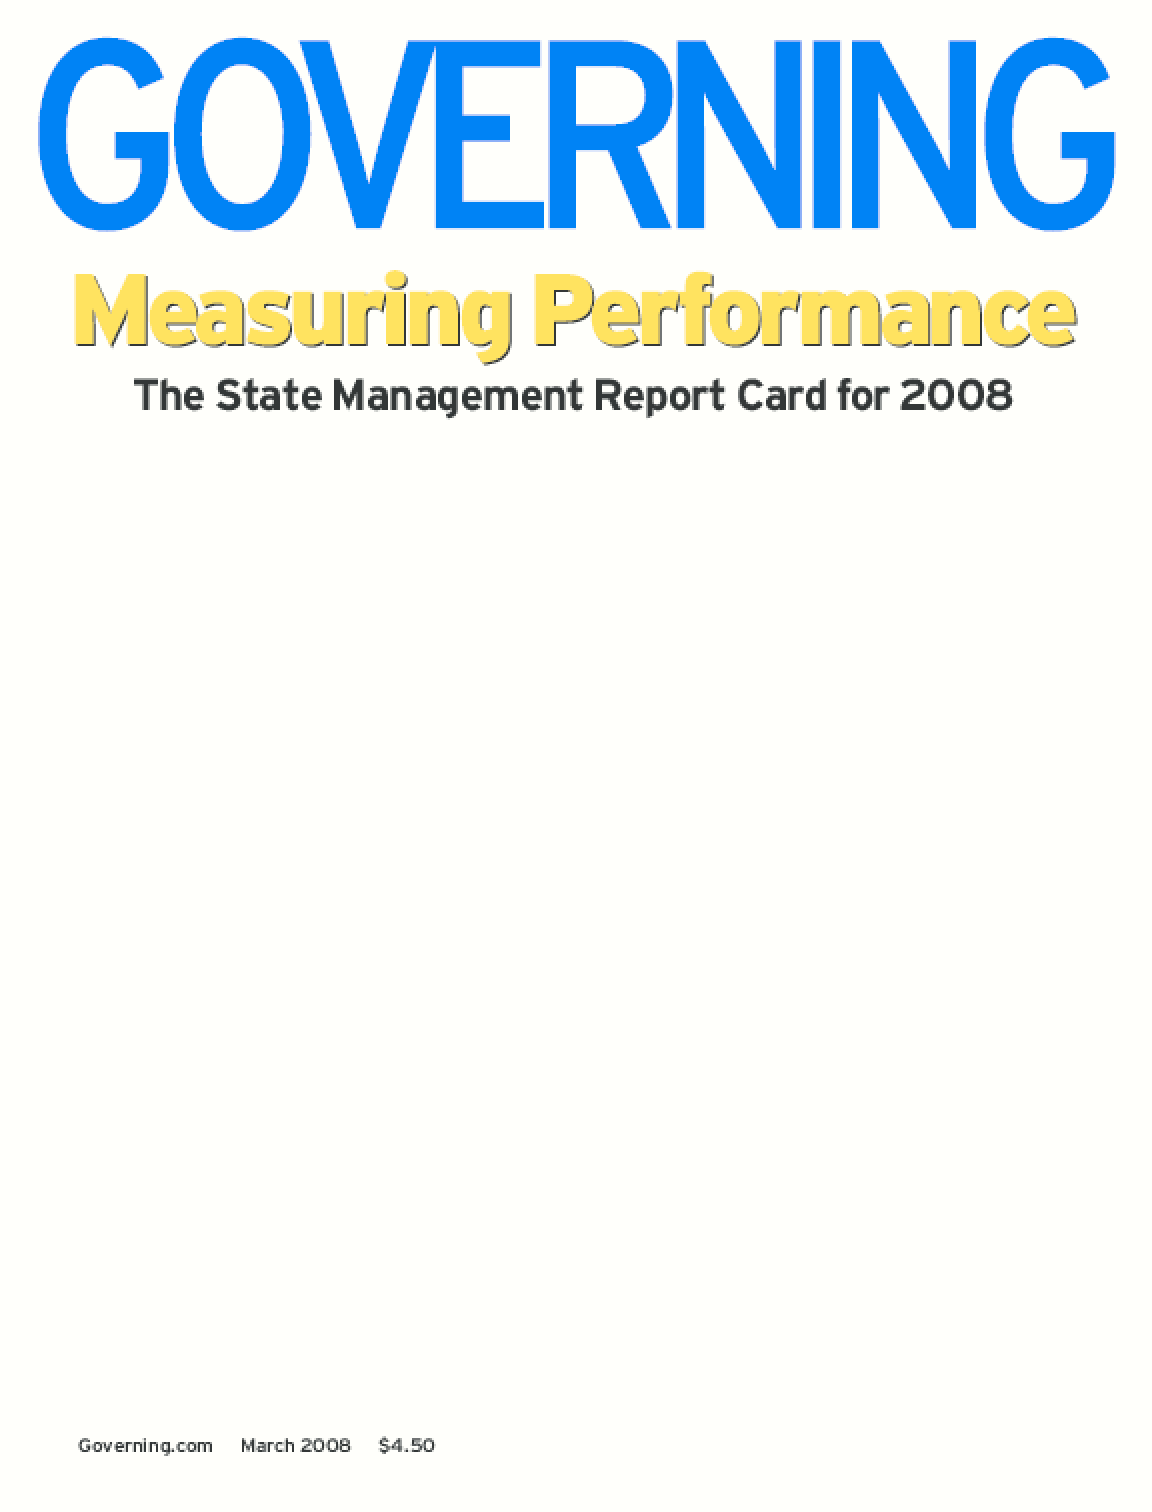 Measuring Performance: The State Management Report Card for 2008